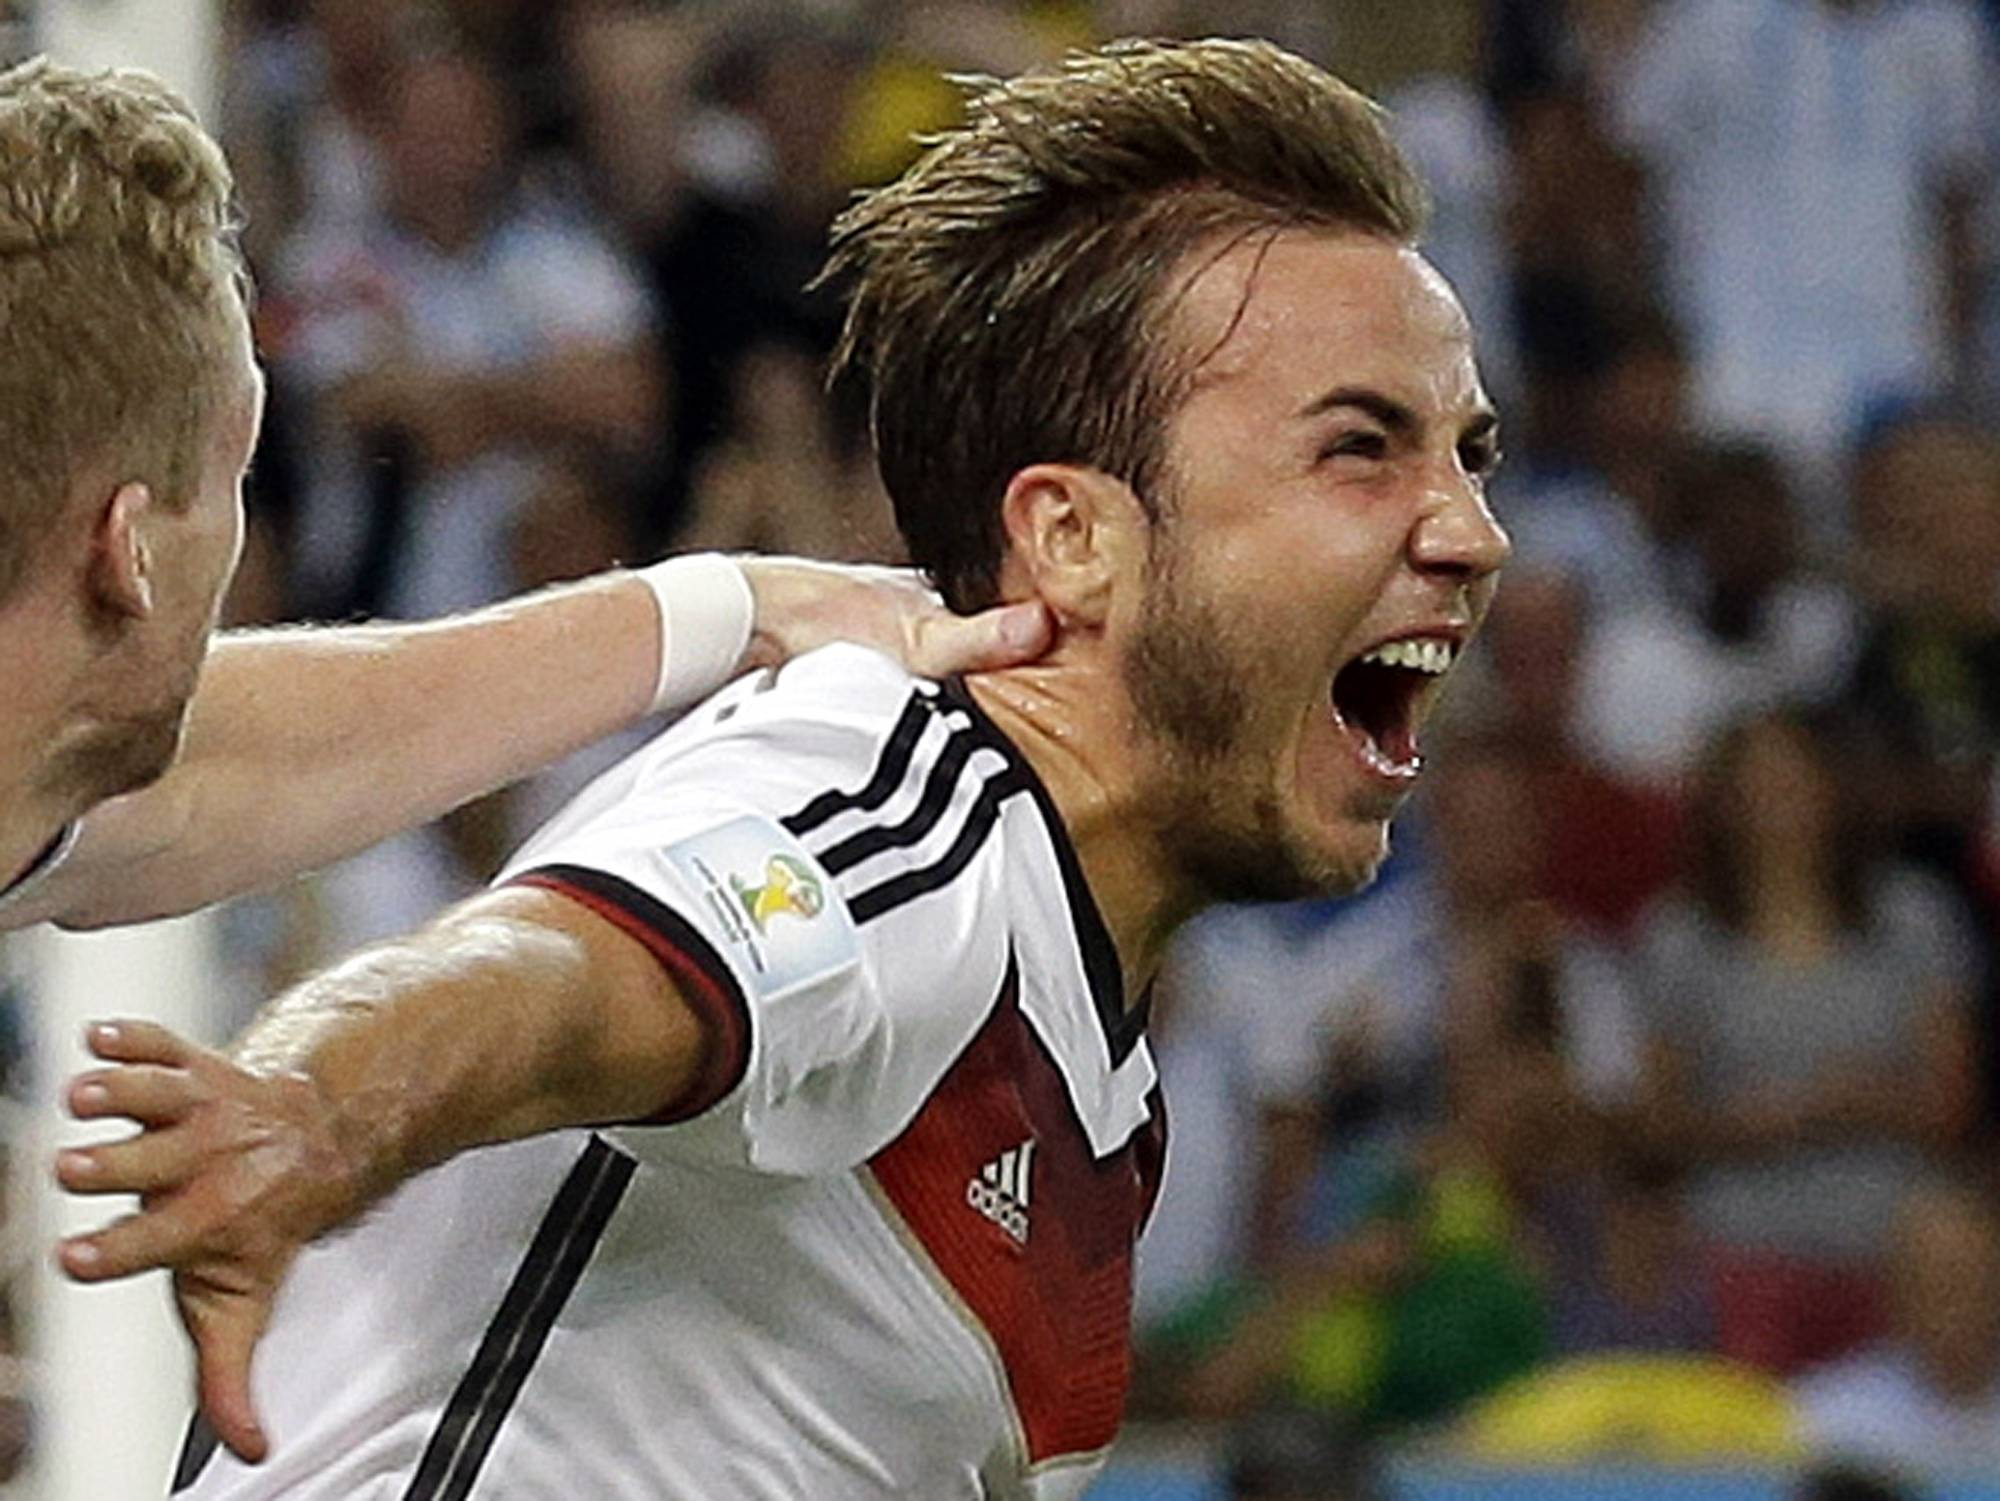 Germany's Mario Goetze celebrates after scoring the opening goal during the World Cup final soccer match between Germany and Argentina at the Maracana Stadium in Rio de Janeiro, Brazil, Sunday, July 13, 2014.